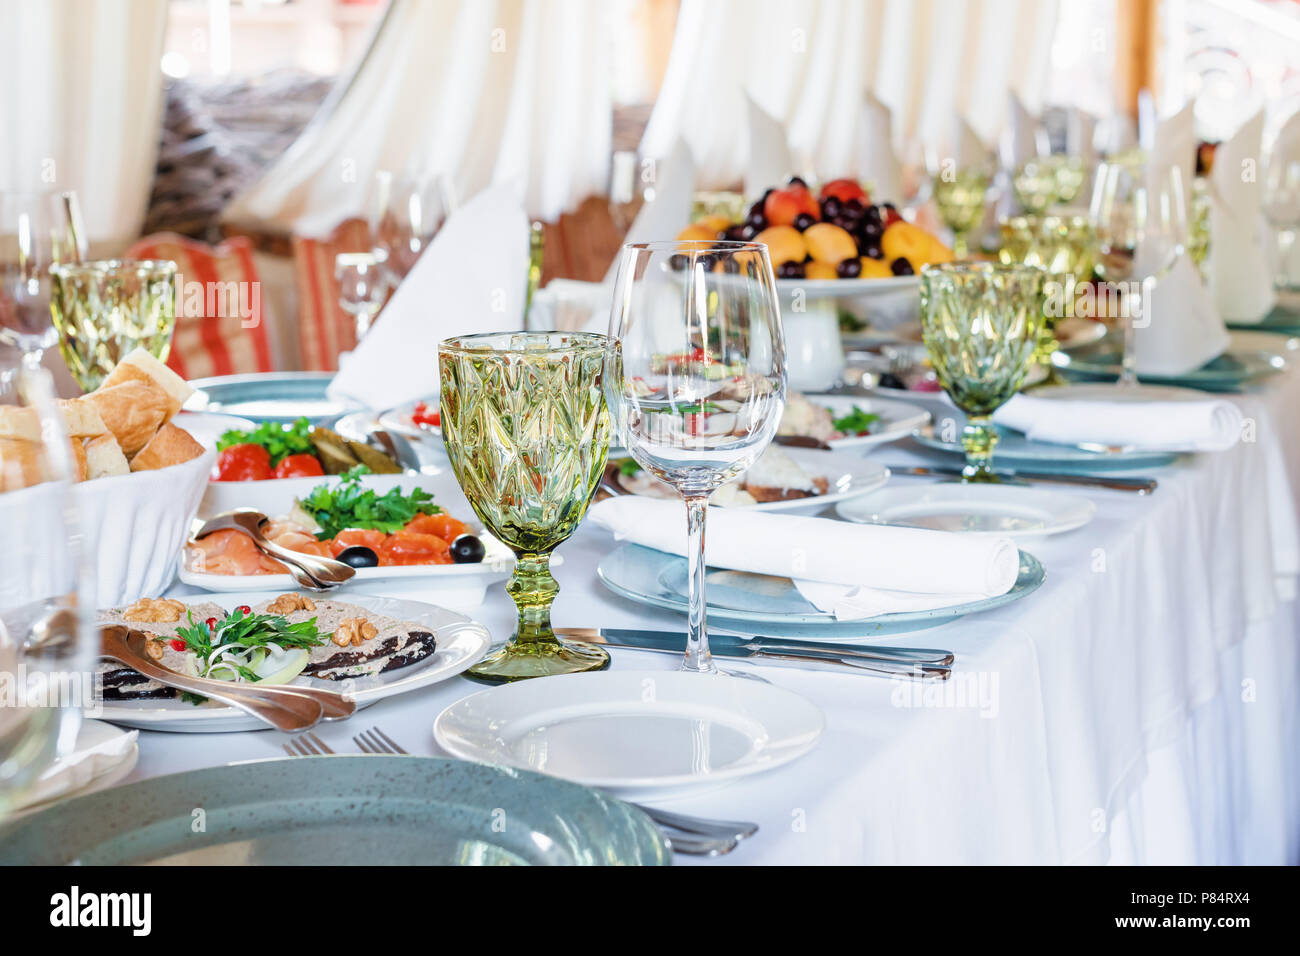 Table Decorations For Holidays And Wedding Dinner Table Set For